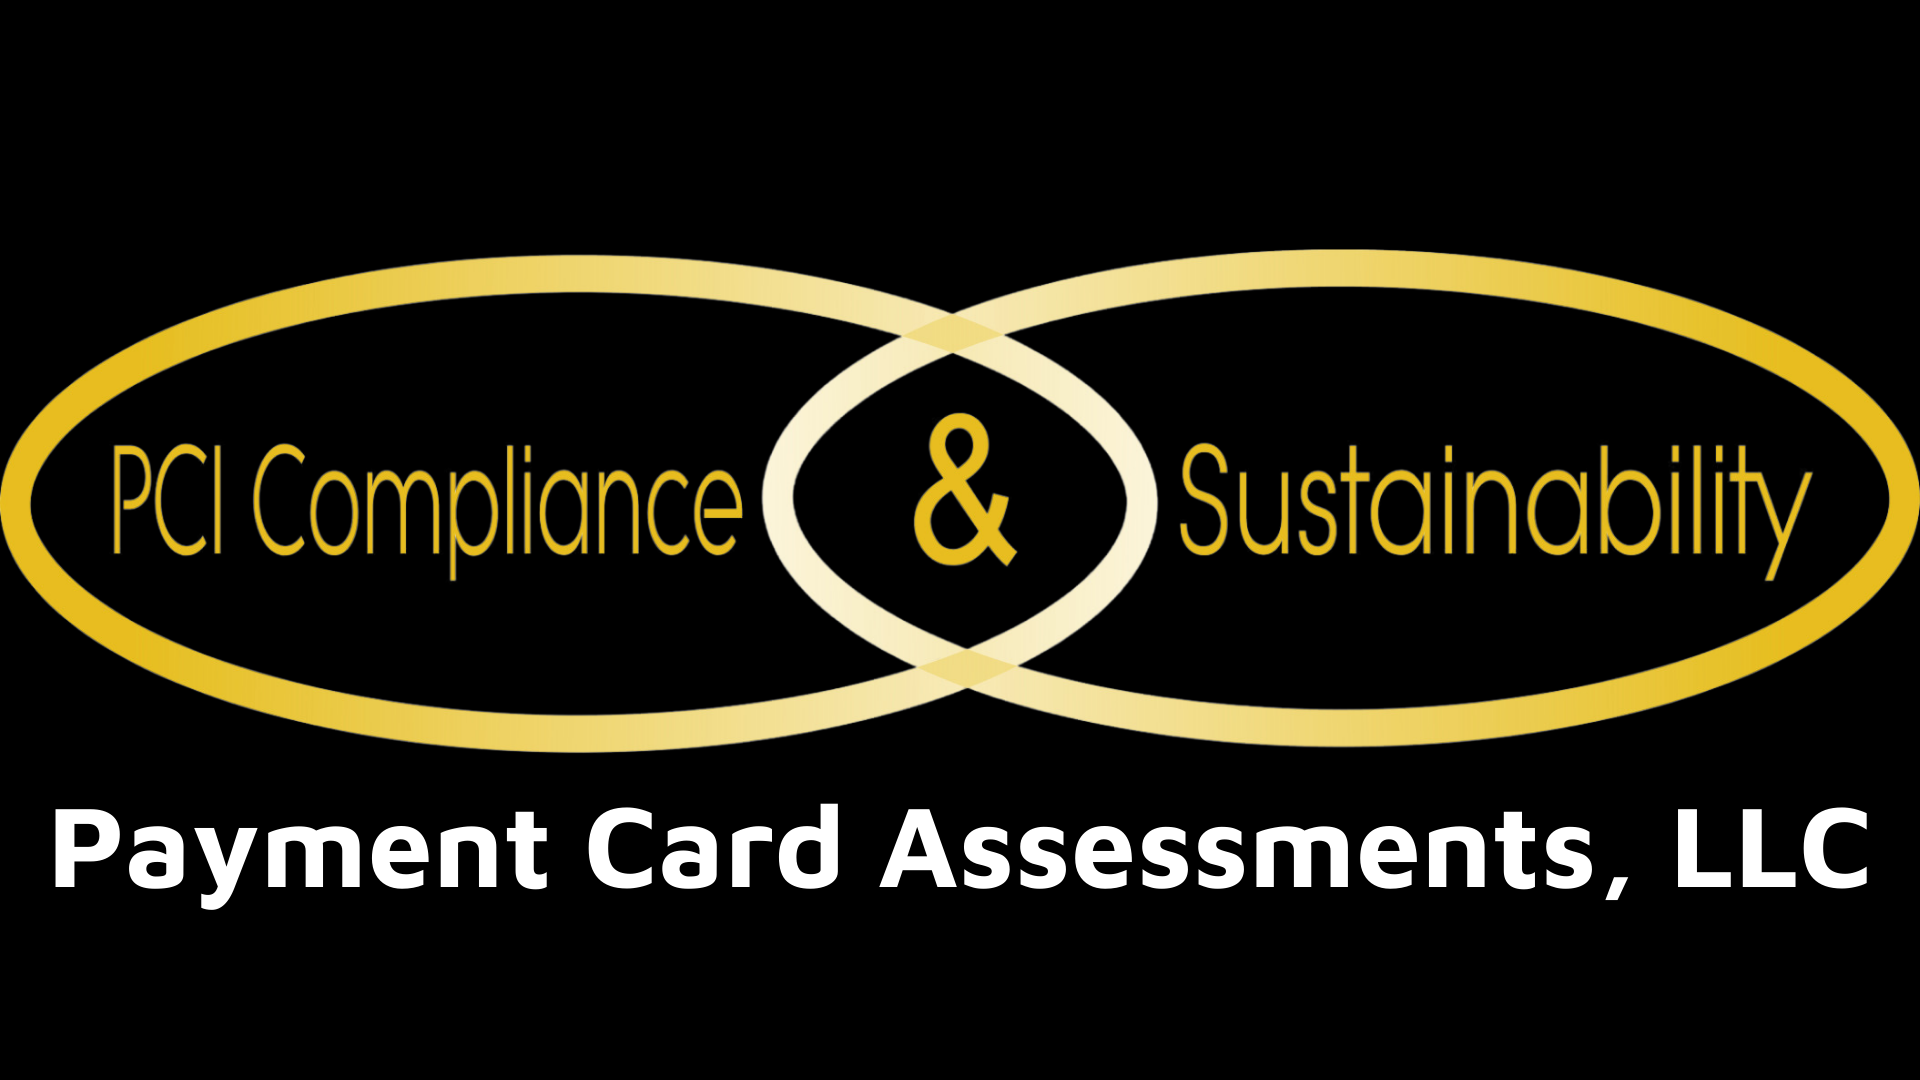 Payment Card Assesments